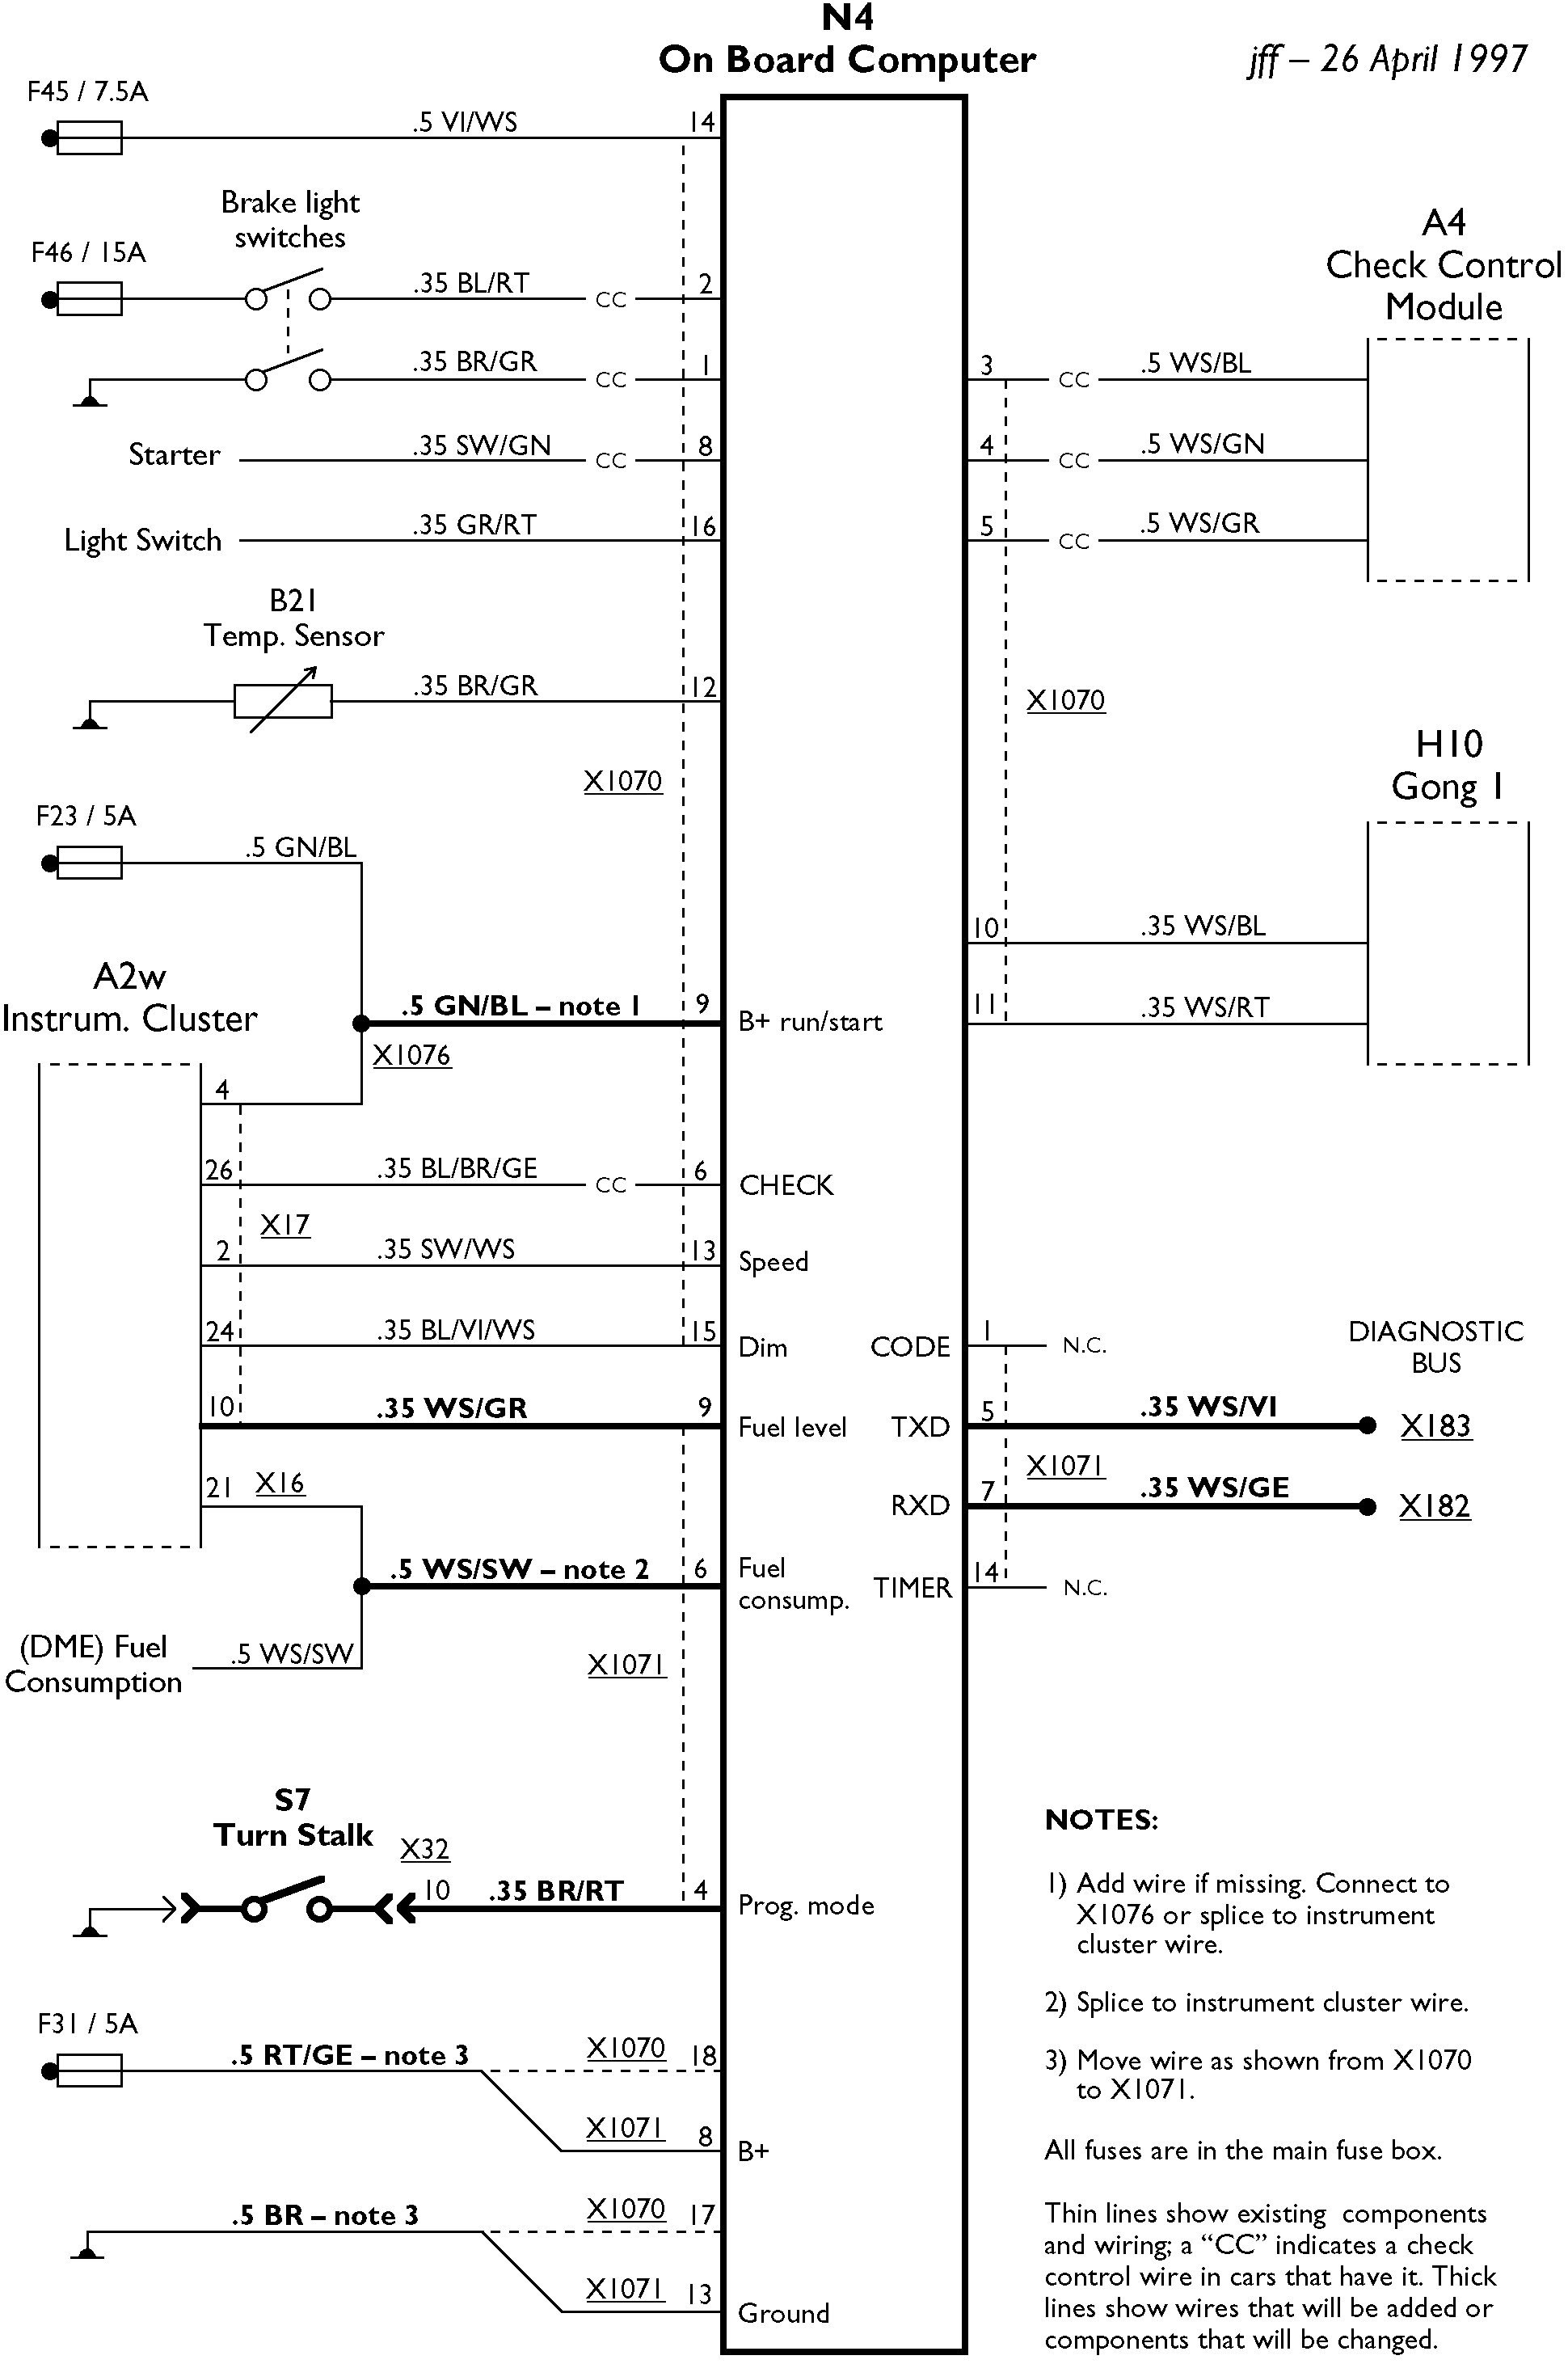 e36 diagnostic port wiring diagram 2002 dodge ram tail light 11 clip the terminal relay block back on to